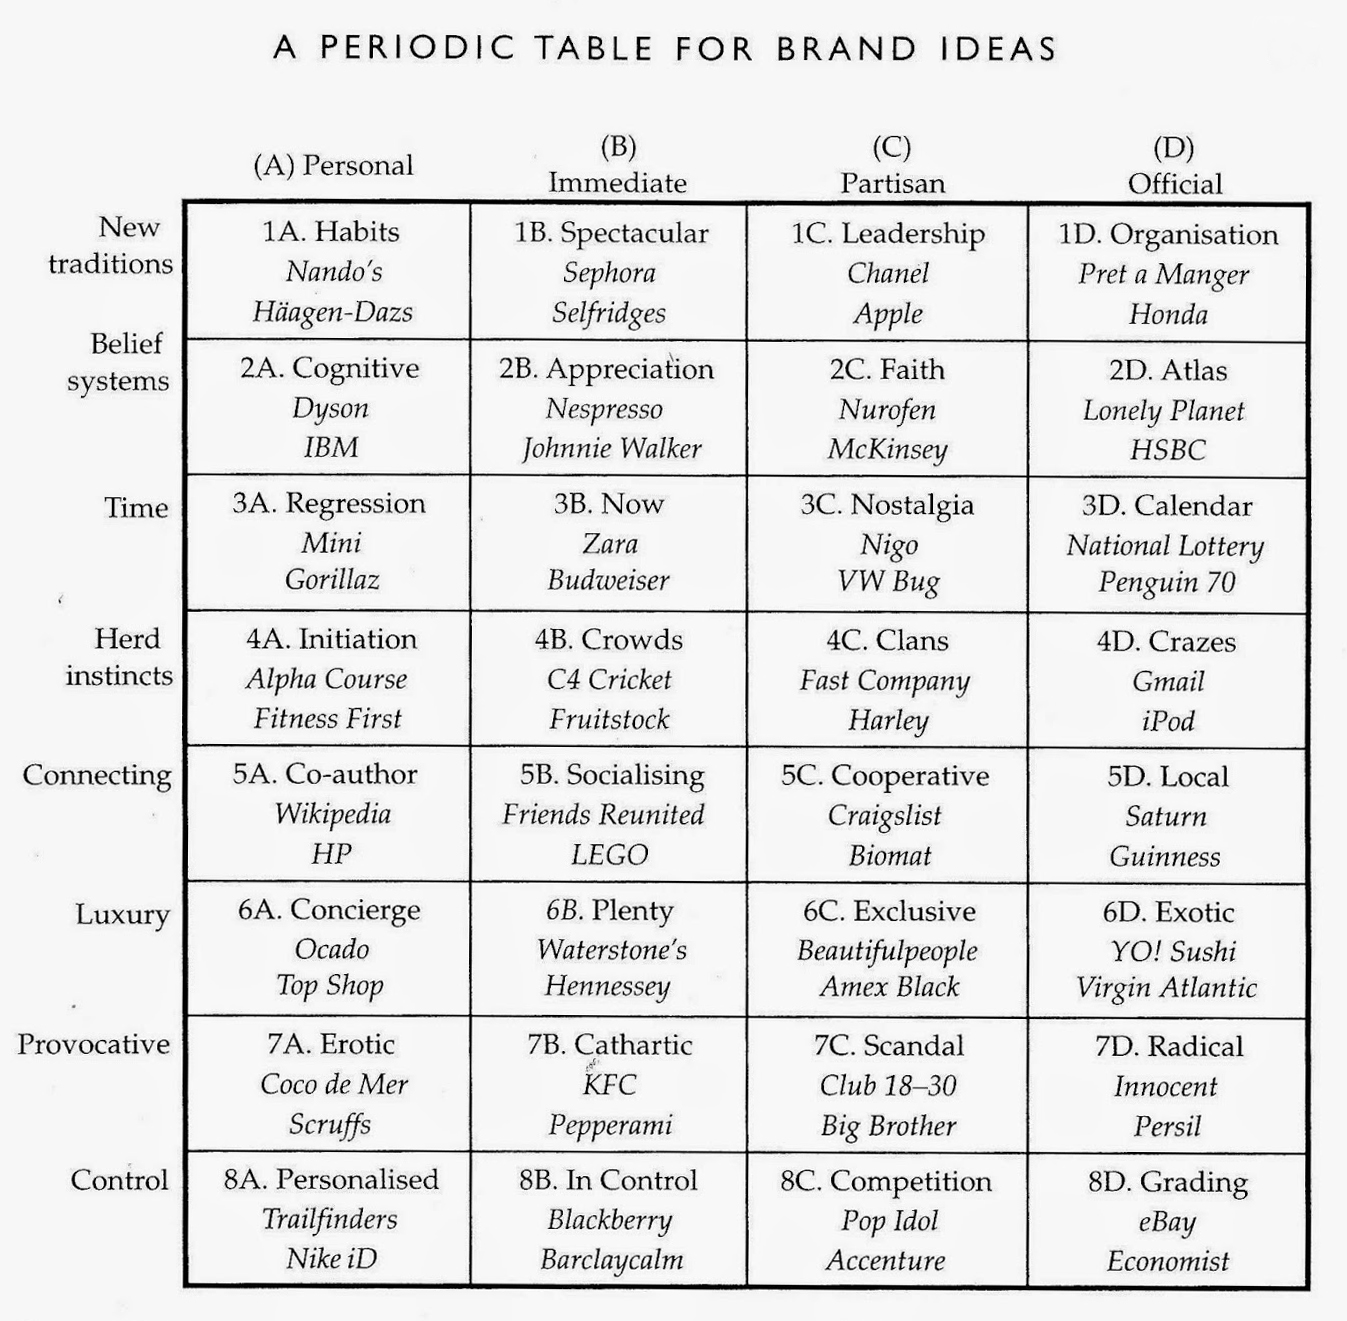 brand cultural ideas periodic table typology